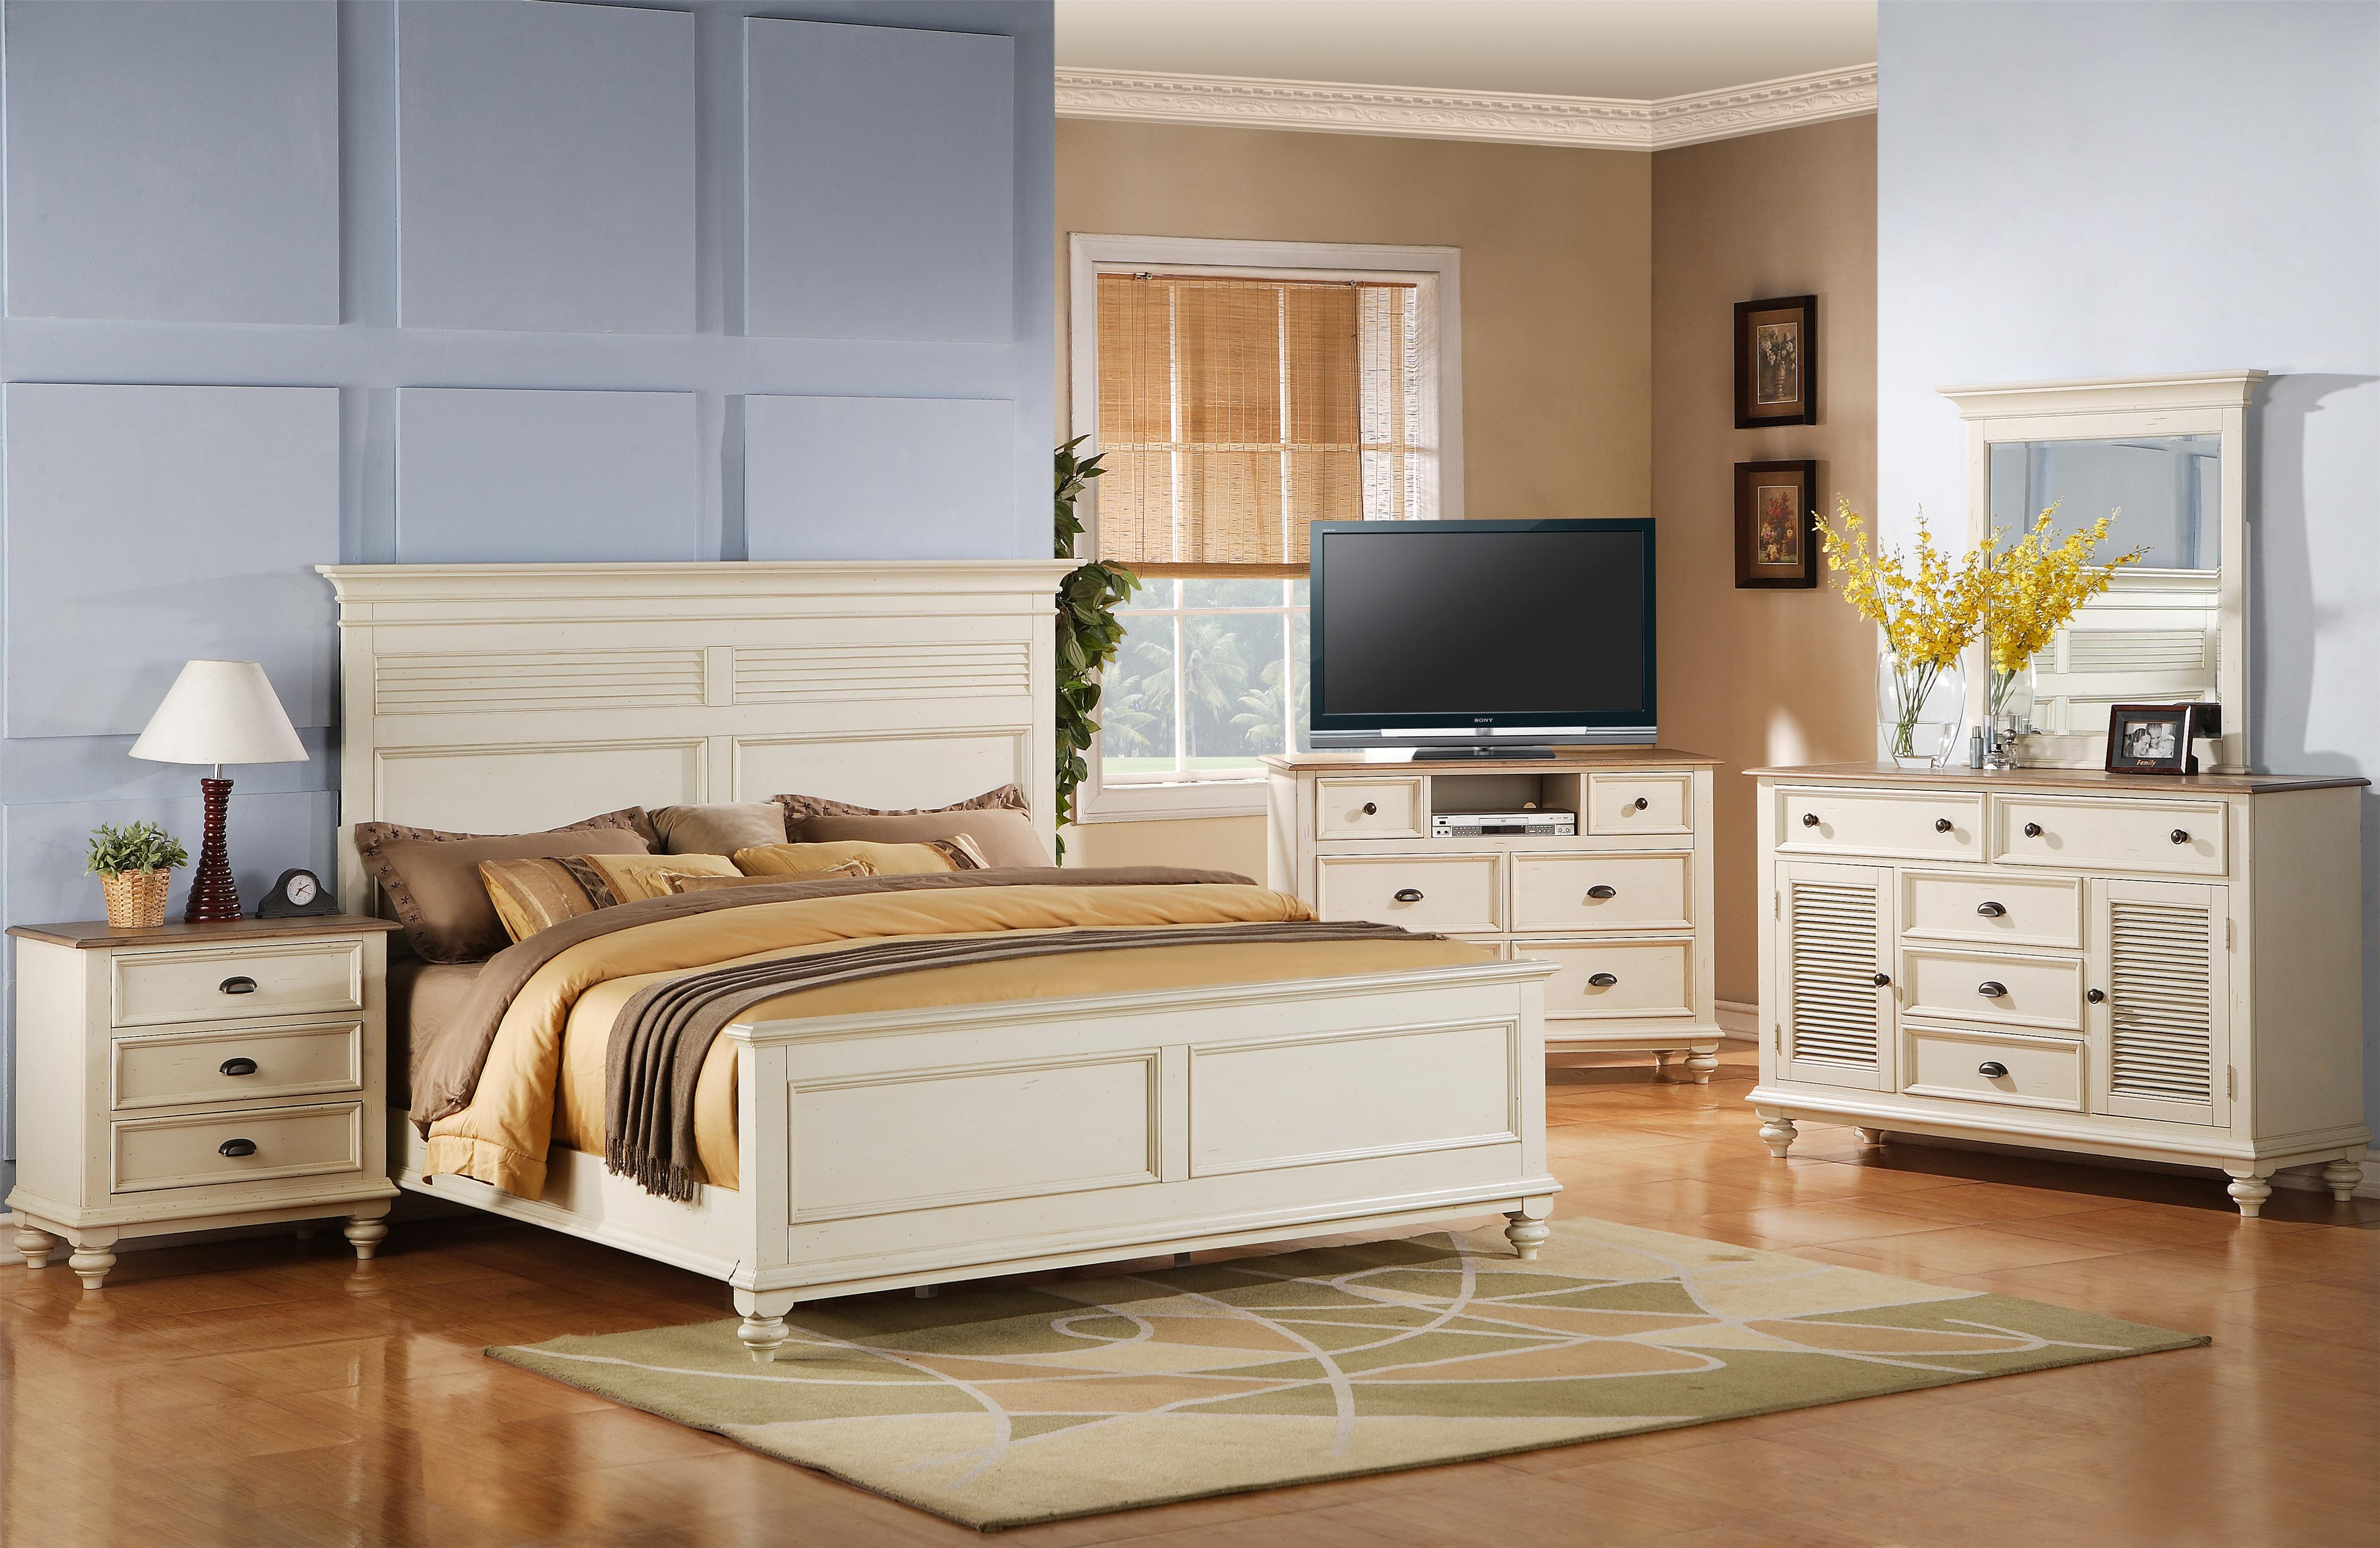 Riverside Furniture Coventry Two Tone Full/Queen Bedroom Group - Item Number: 32500 F Q Bedroom Group 19